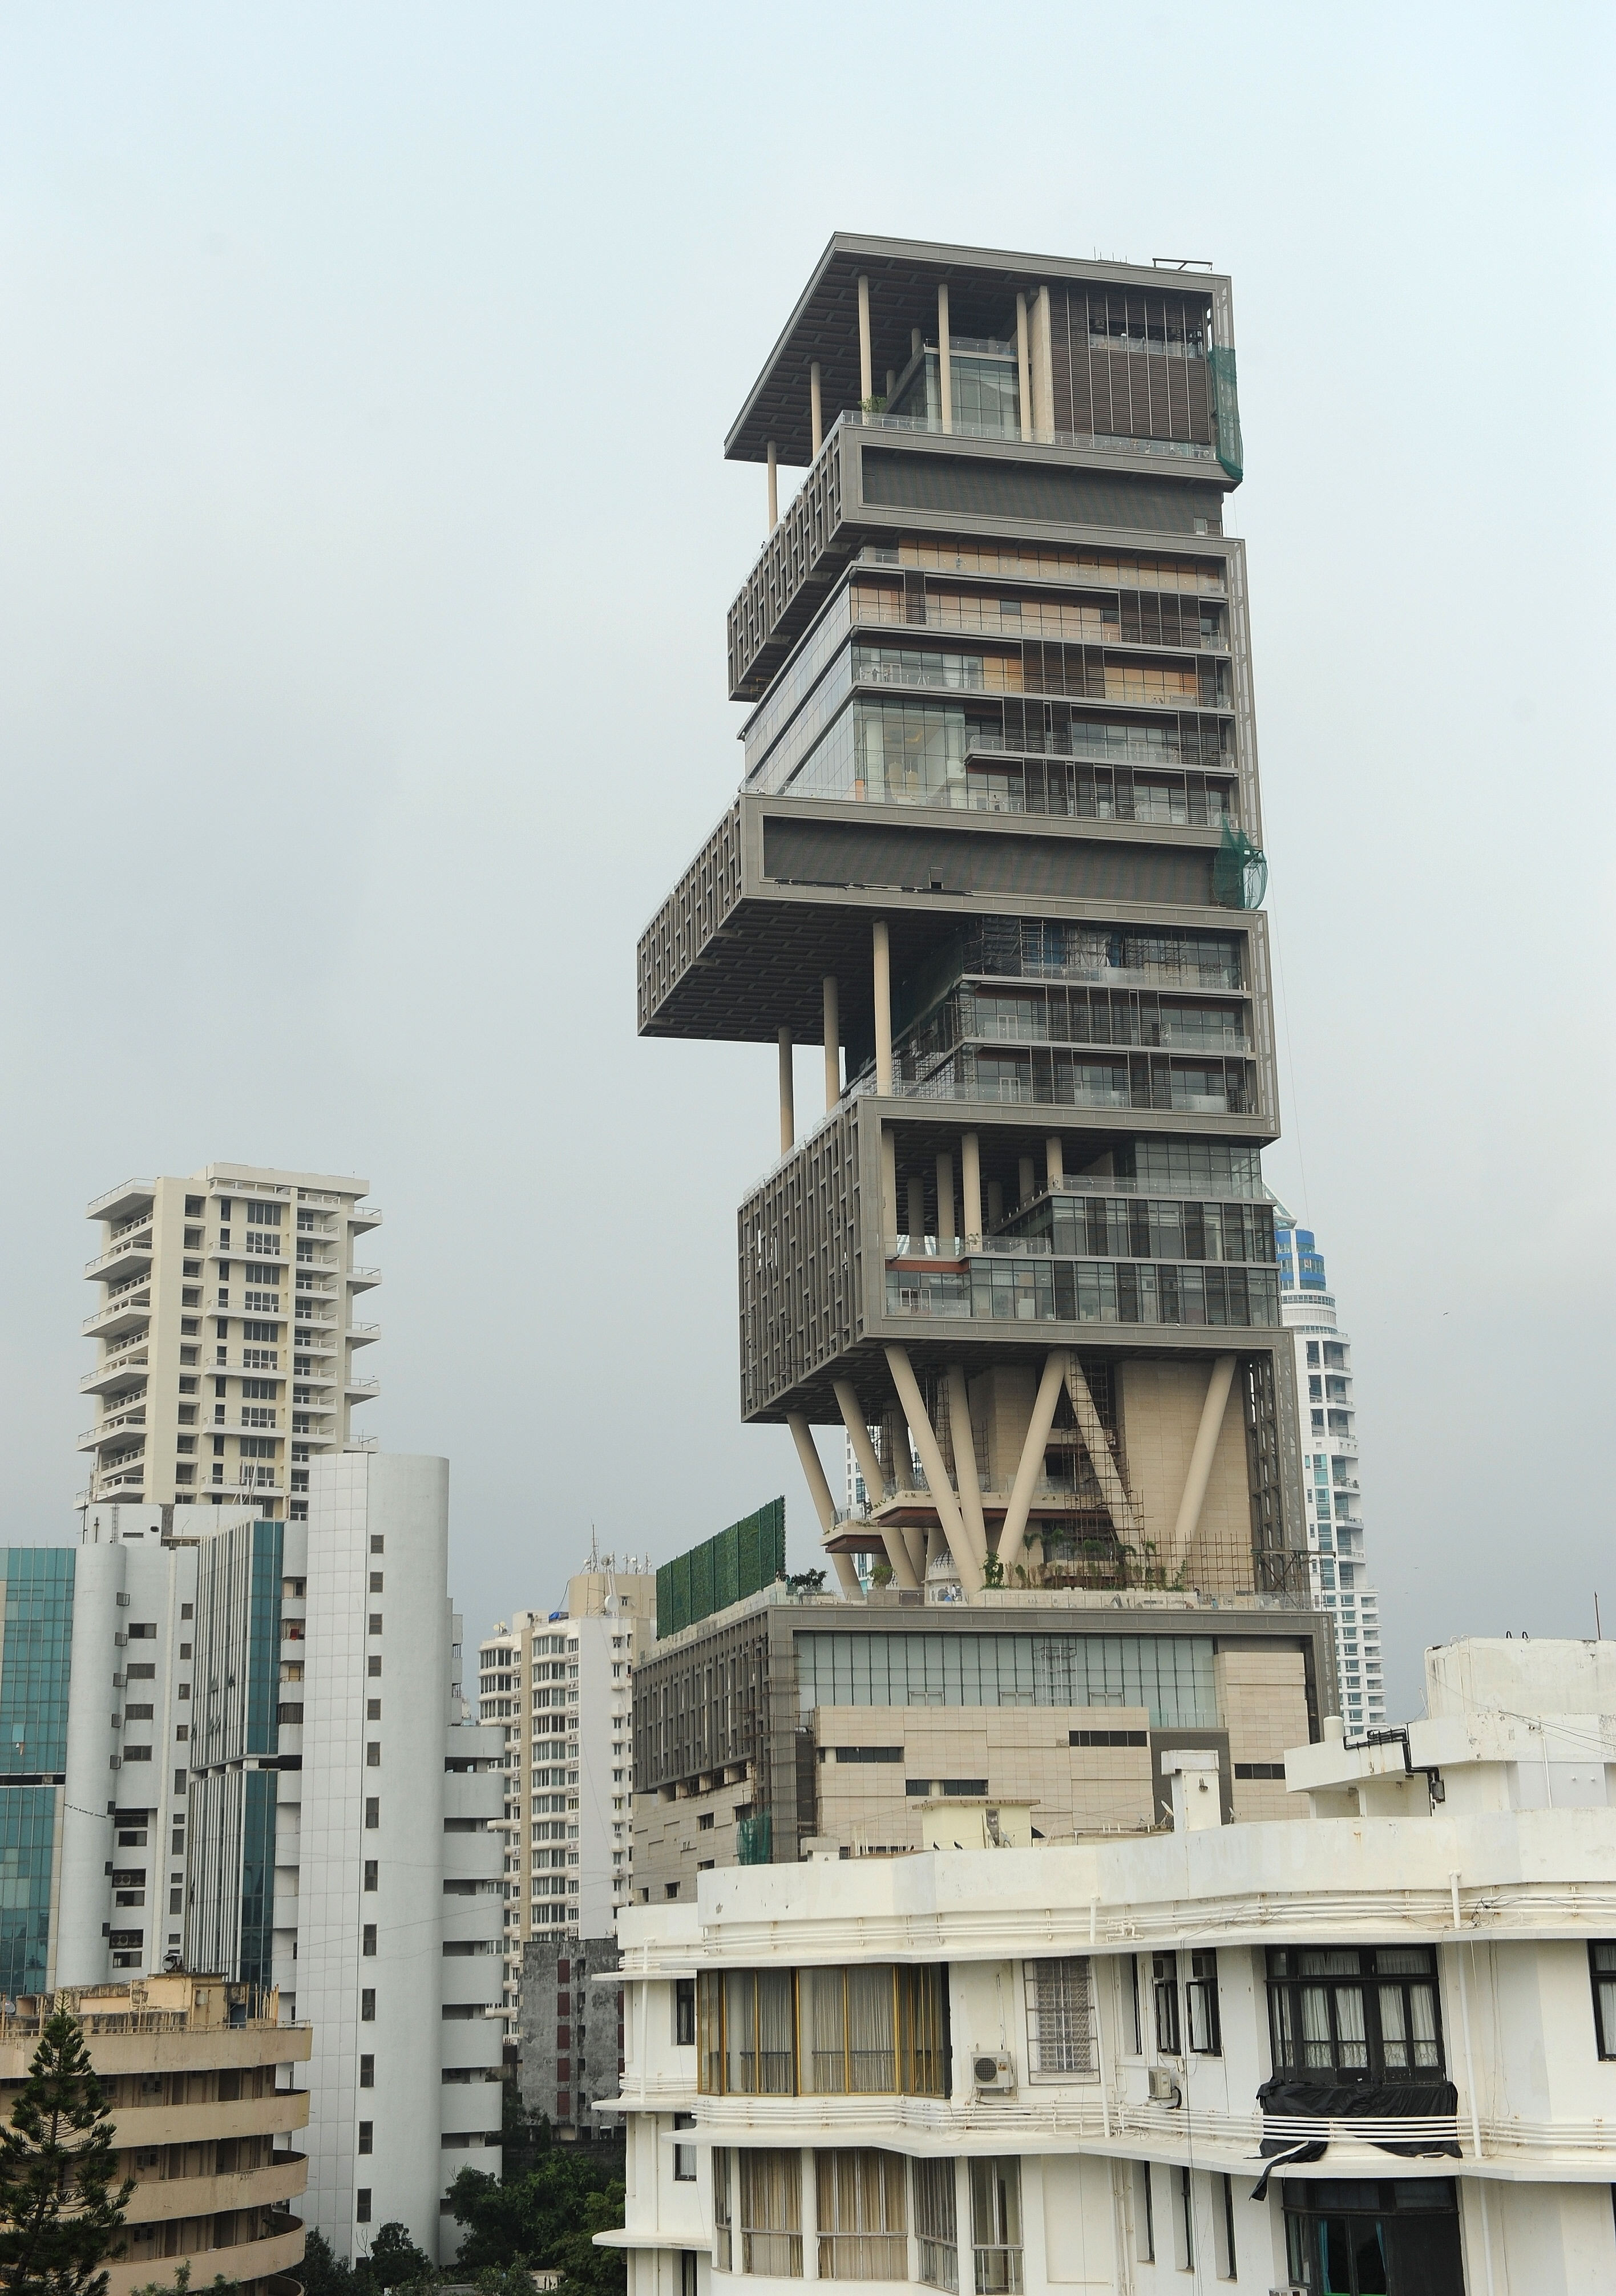 antila12 Mukesh Ambanis billion dollar home image gallery 